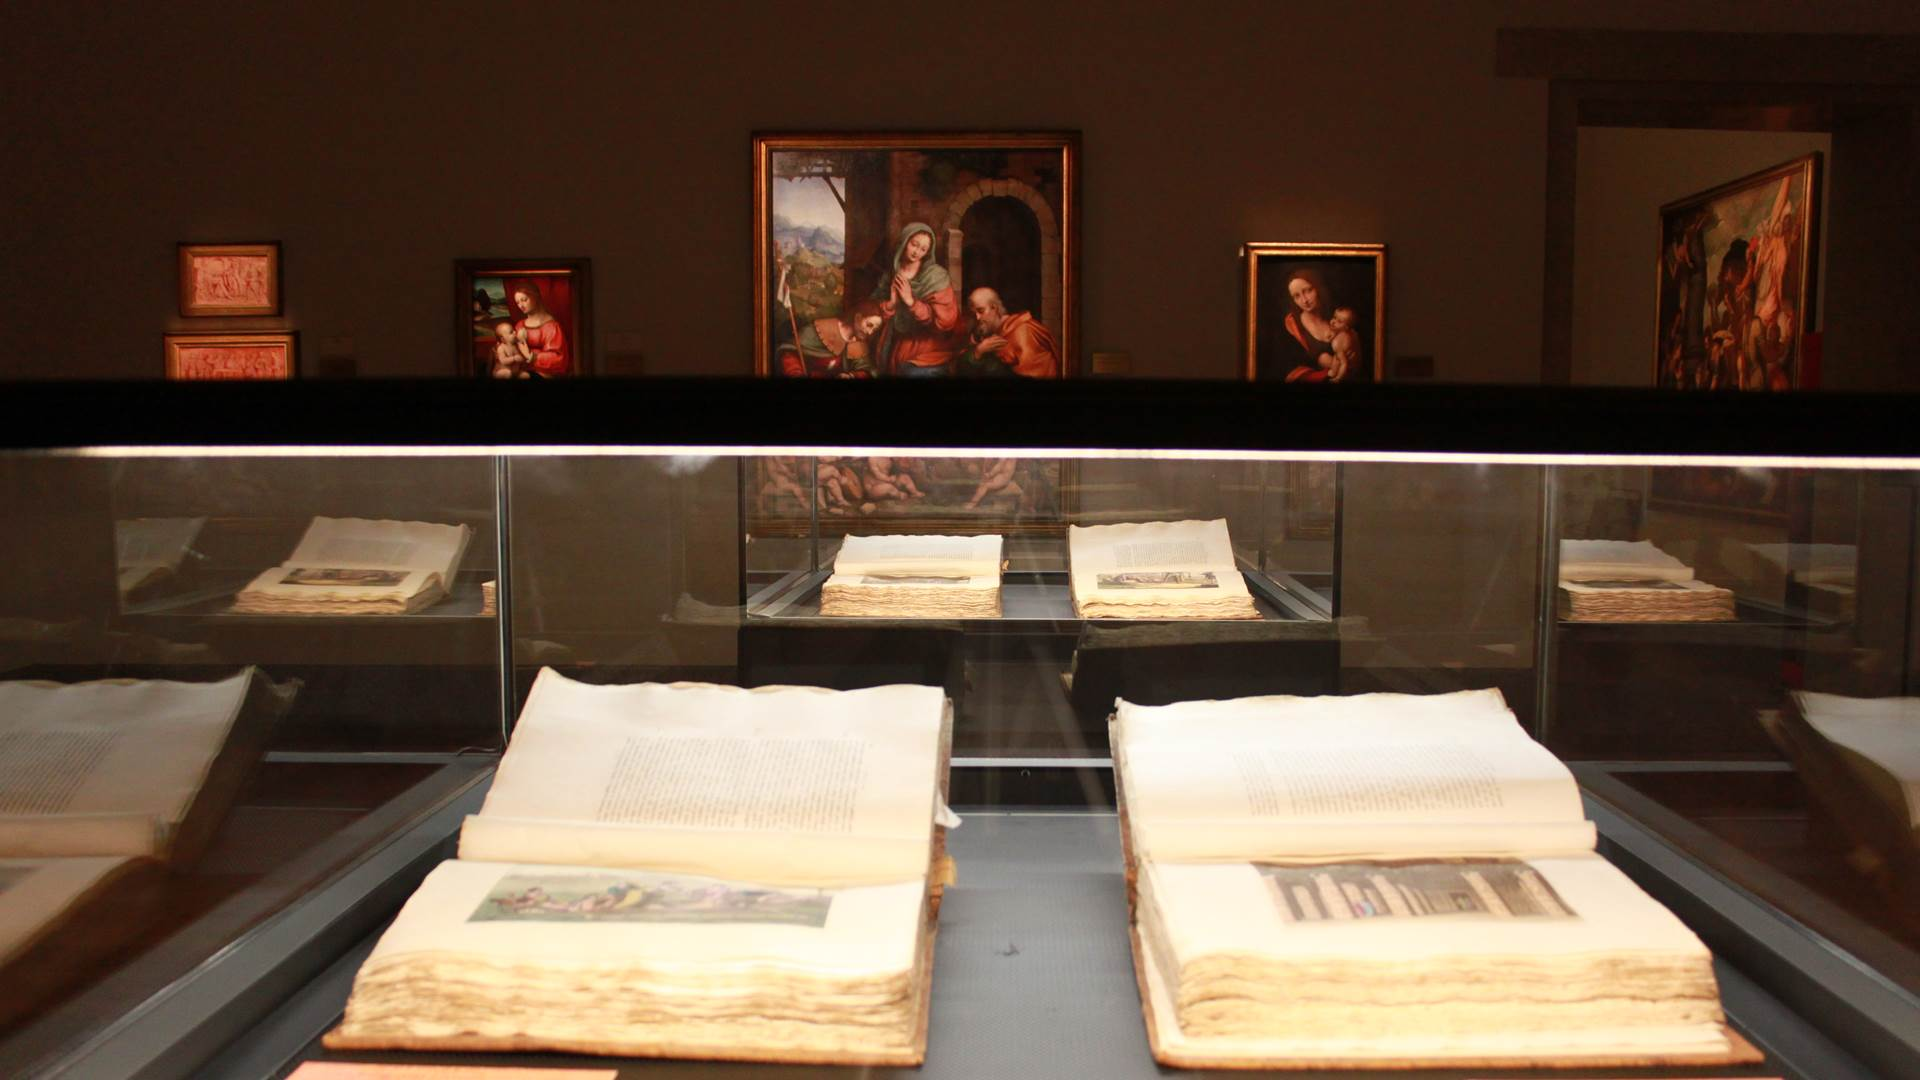 MARCH 26: PINACOTECA CLOSED TO THE PUBLIC UNTIL 15.00